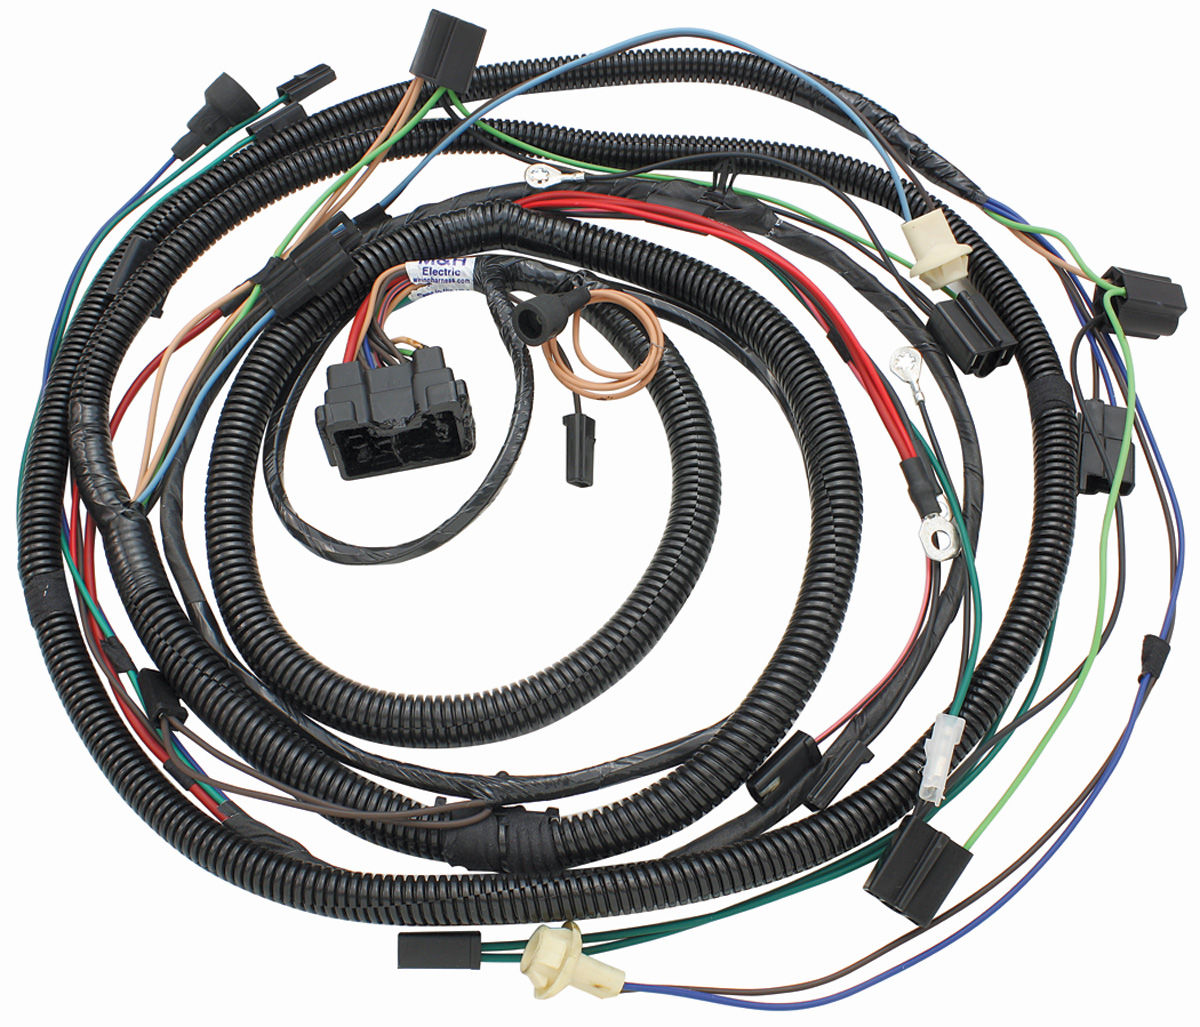 1971 oldsmobile 442 wiring harness 1971 monte carlo wiring harness #11